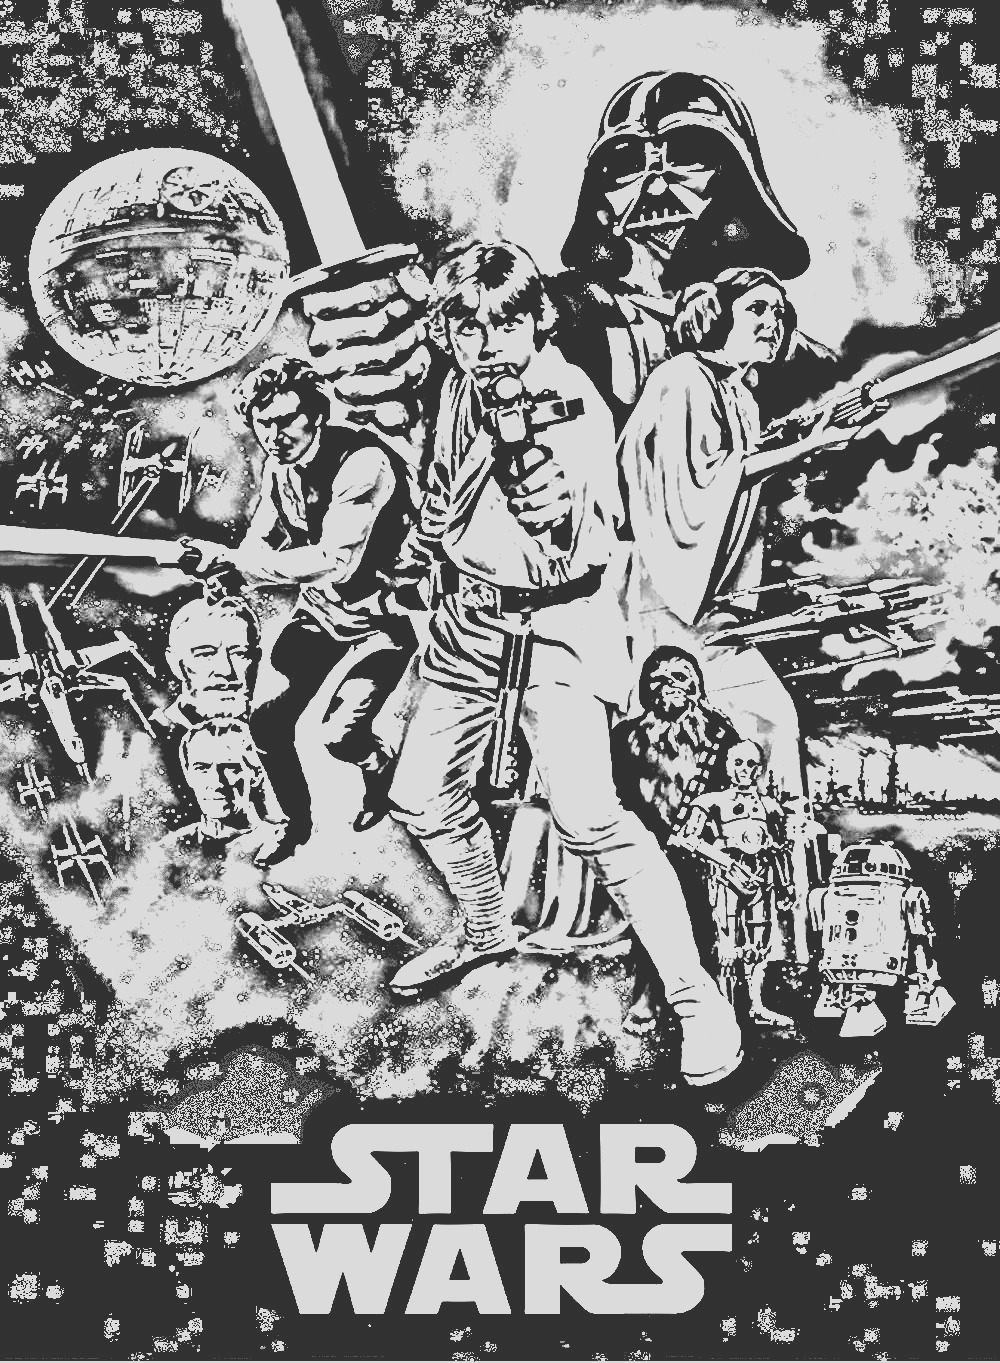 image=movie posters coloring movie star wars episode 4 1